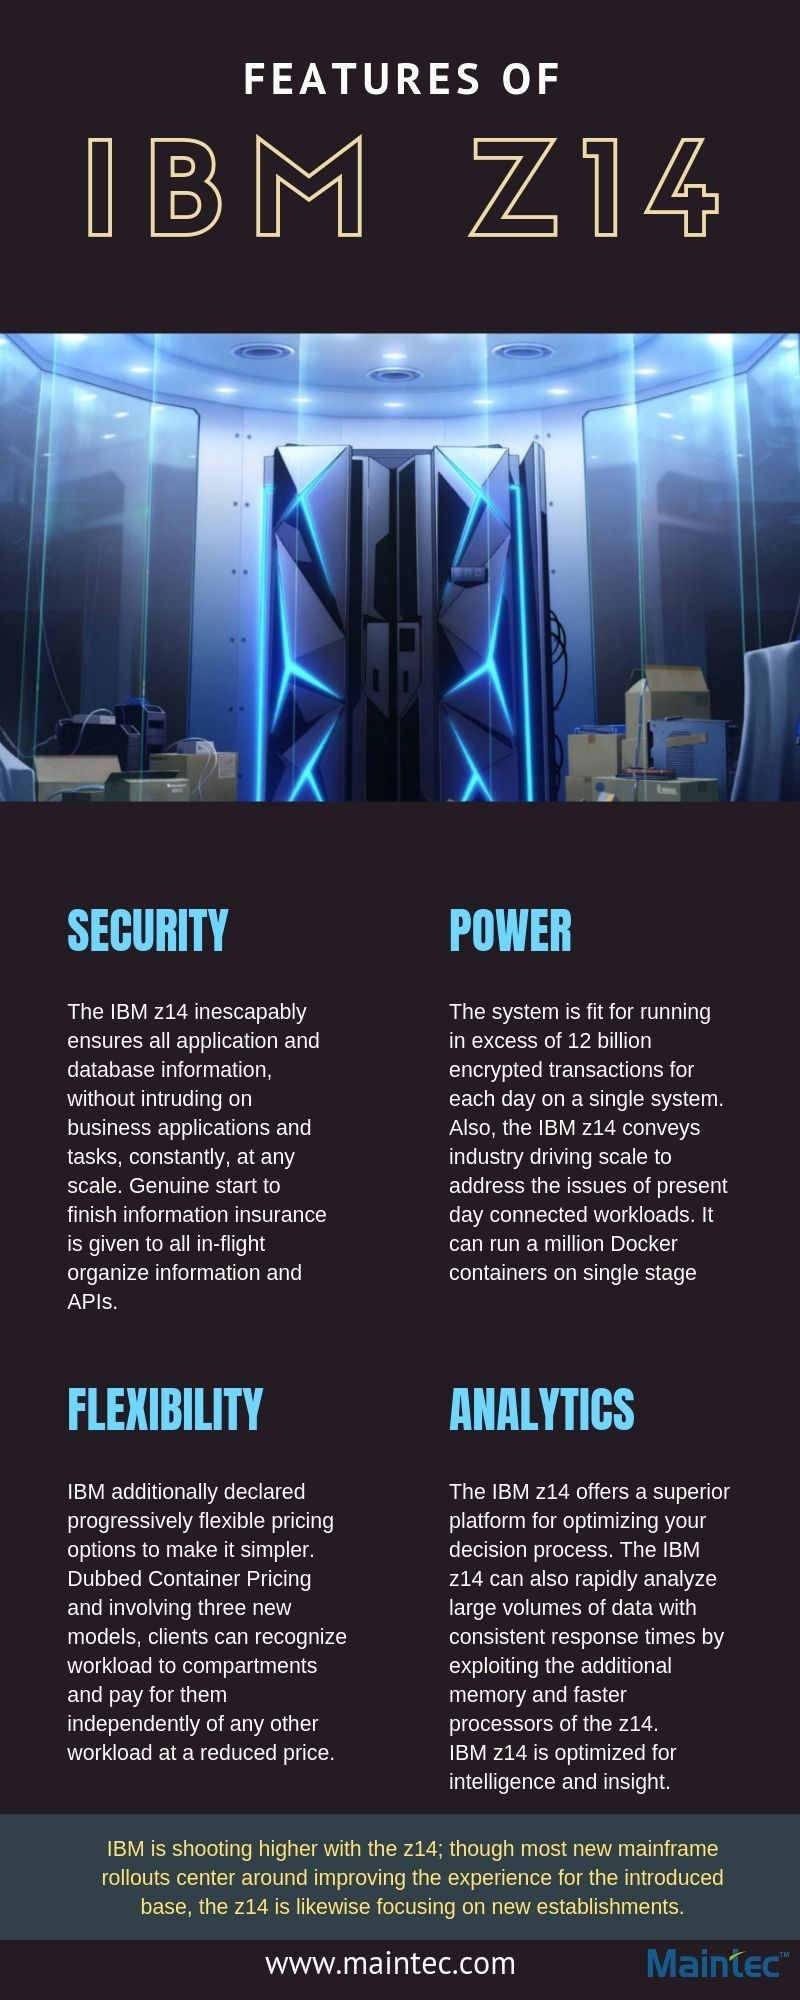 IBM z14 is the latest mainframe. This infographic